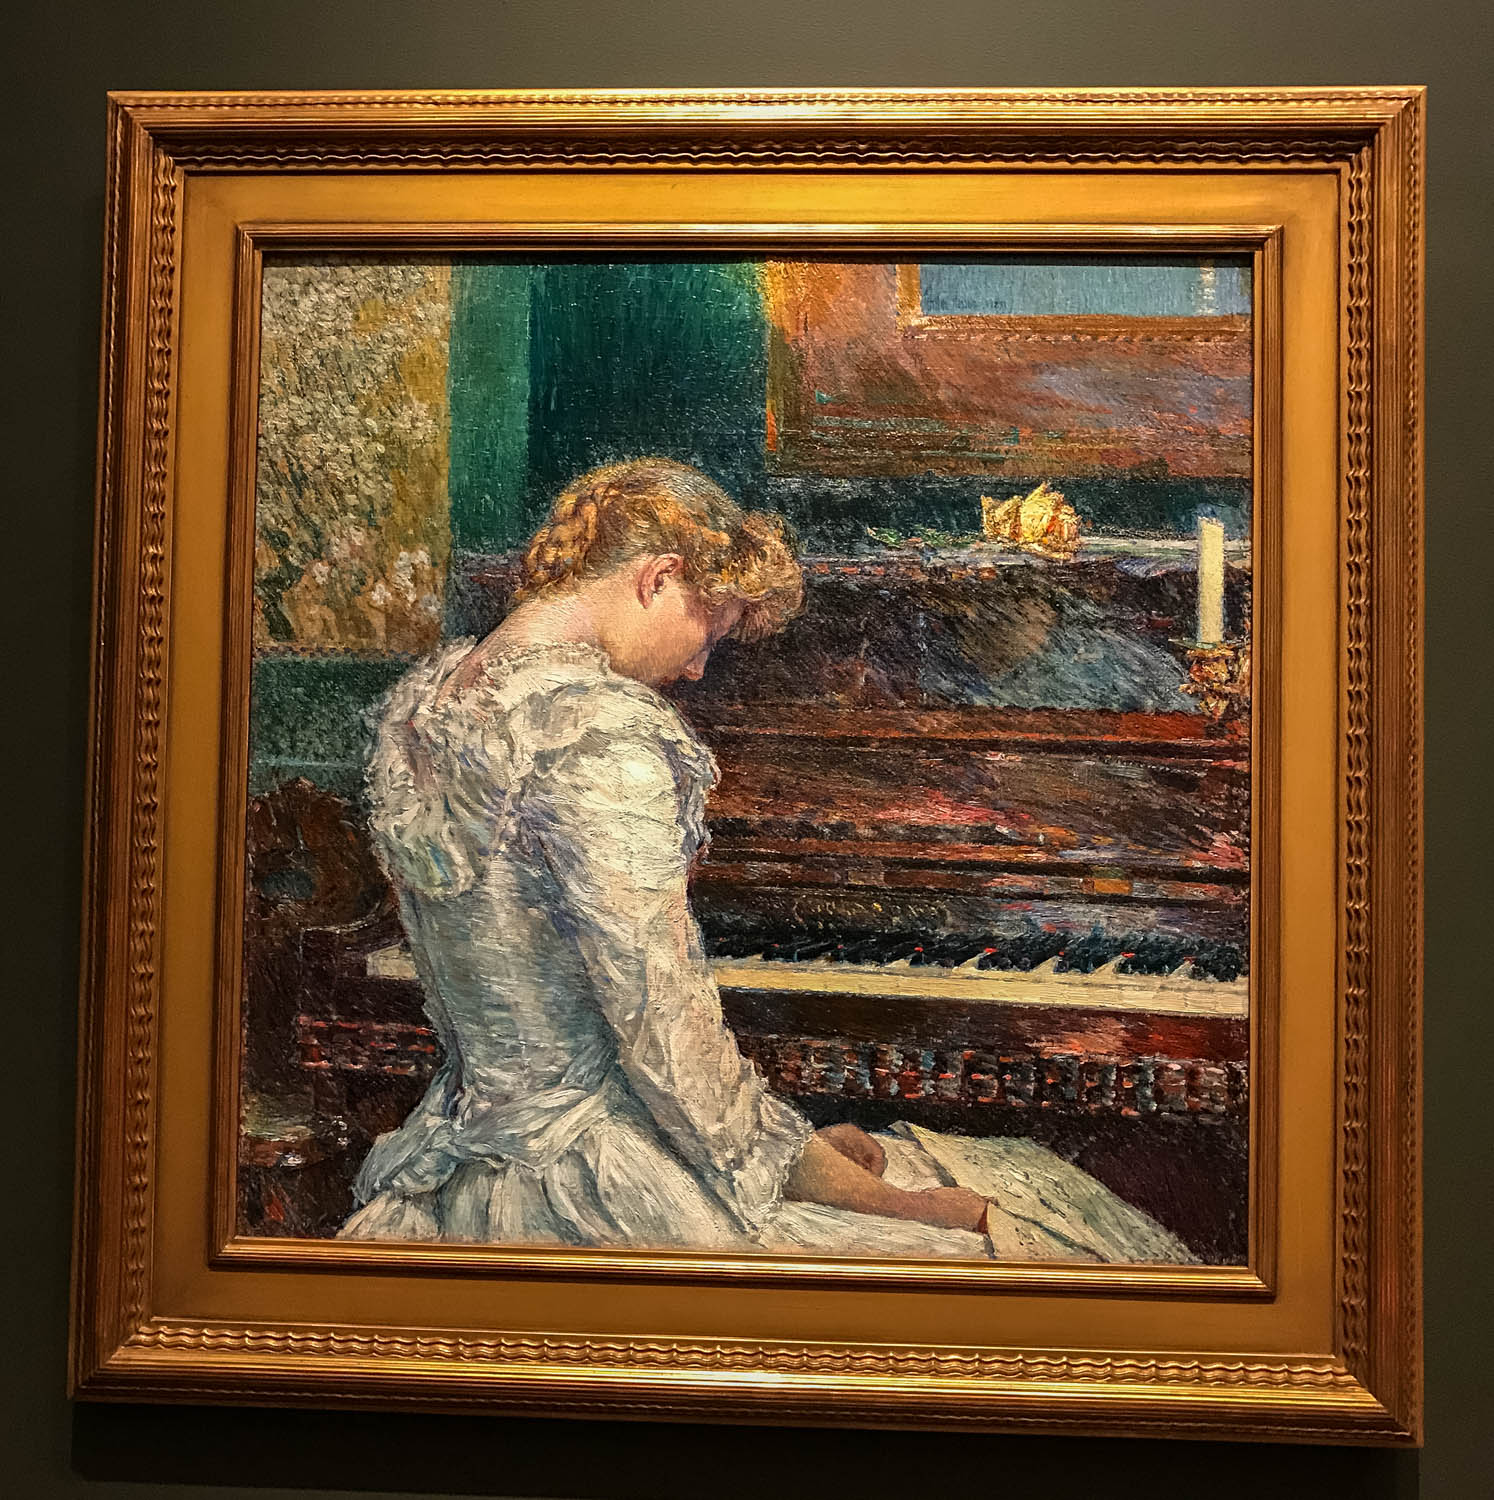 """The Sonata , 1893 by the American Childe Hassam (1859-1935), oil on canvas. From the tag: """"Combining luminous color, staccato brushwork and academic drawing, Childe Hassam's  The Sonata exalts sensory and aesthetic experiences. The painting feature a pianist having just performed Beethoven's famously difficult  Sonata Appassionata, a score for which she holds in her lap. He slouched posture, echoed by a similarly beautiful but fragile looking yellow rose atop the piano. A Japanese scroll showing a blossoming cherry tree also evokes the dual pleasures of sight and smell."""" The piece demonstrates the artist's endorsement of a late-19th century movement that proclaimed that art was not obliged to tell a story or to impart morals. Instead, art could be viewed as uplifting society by celebrating beauty."""